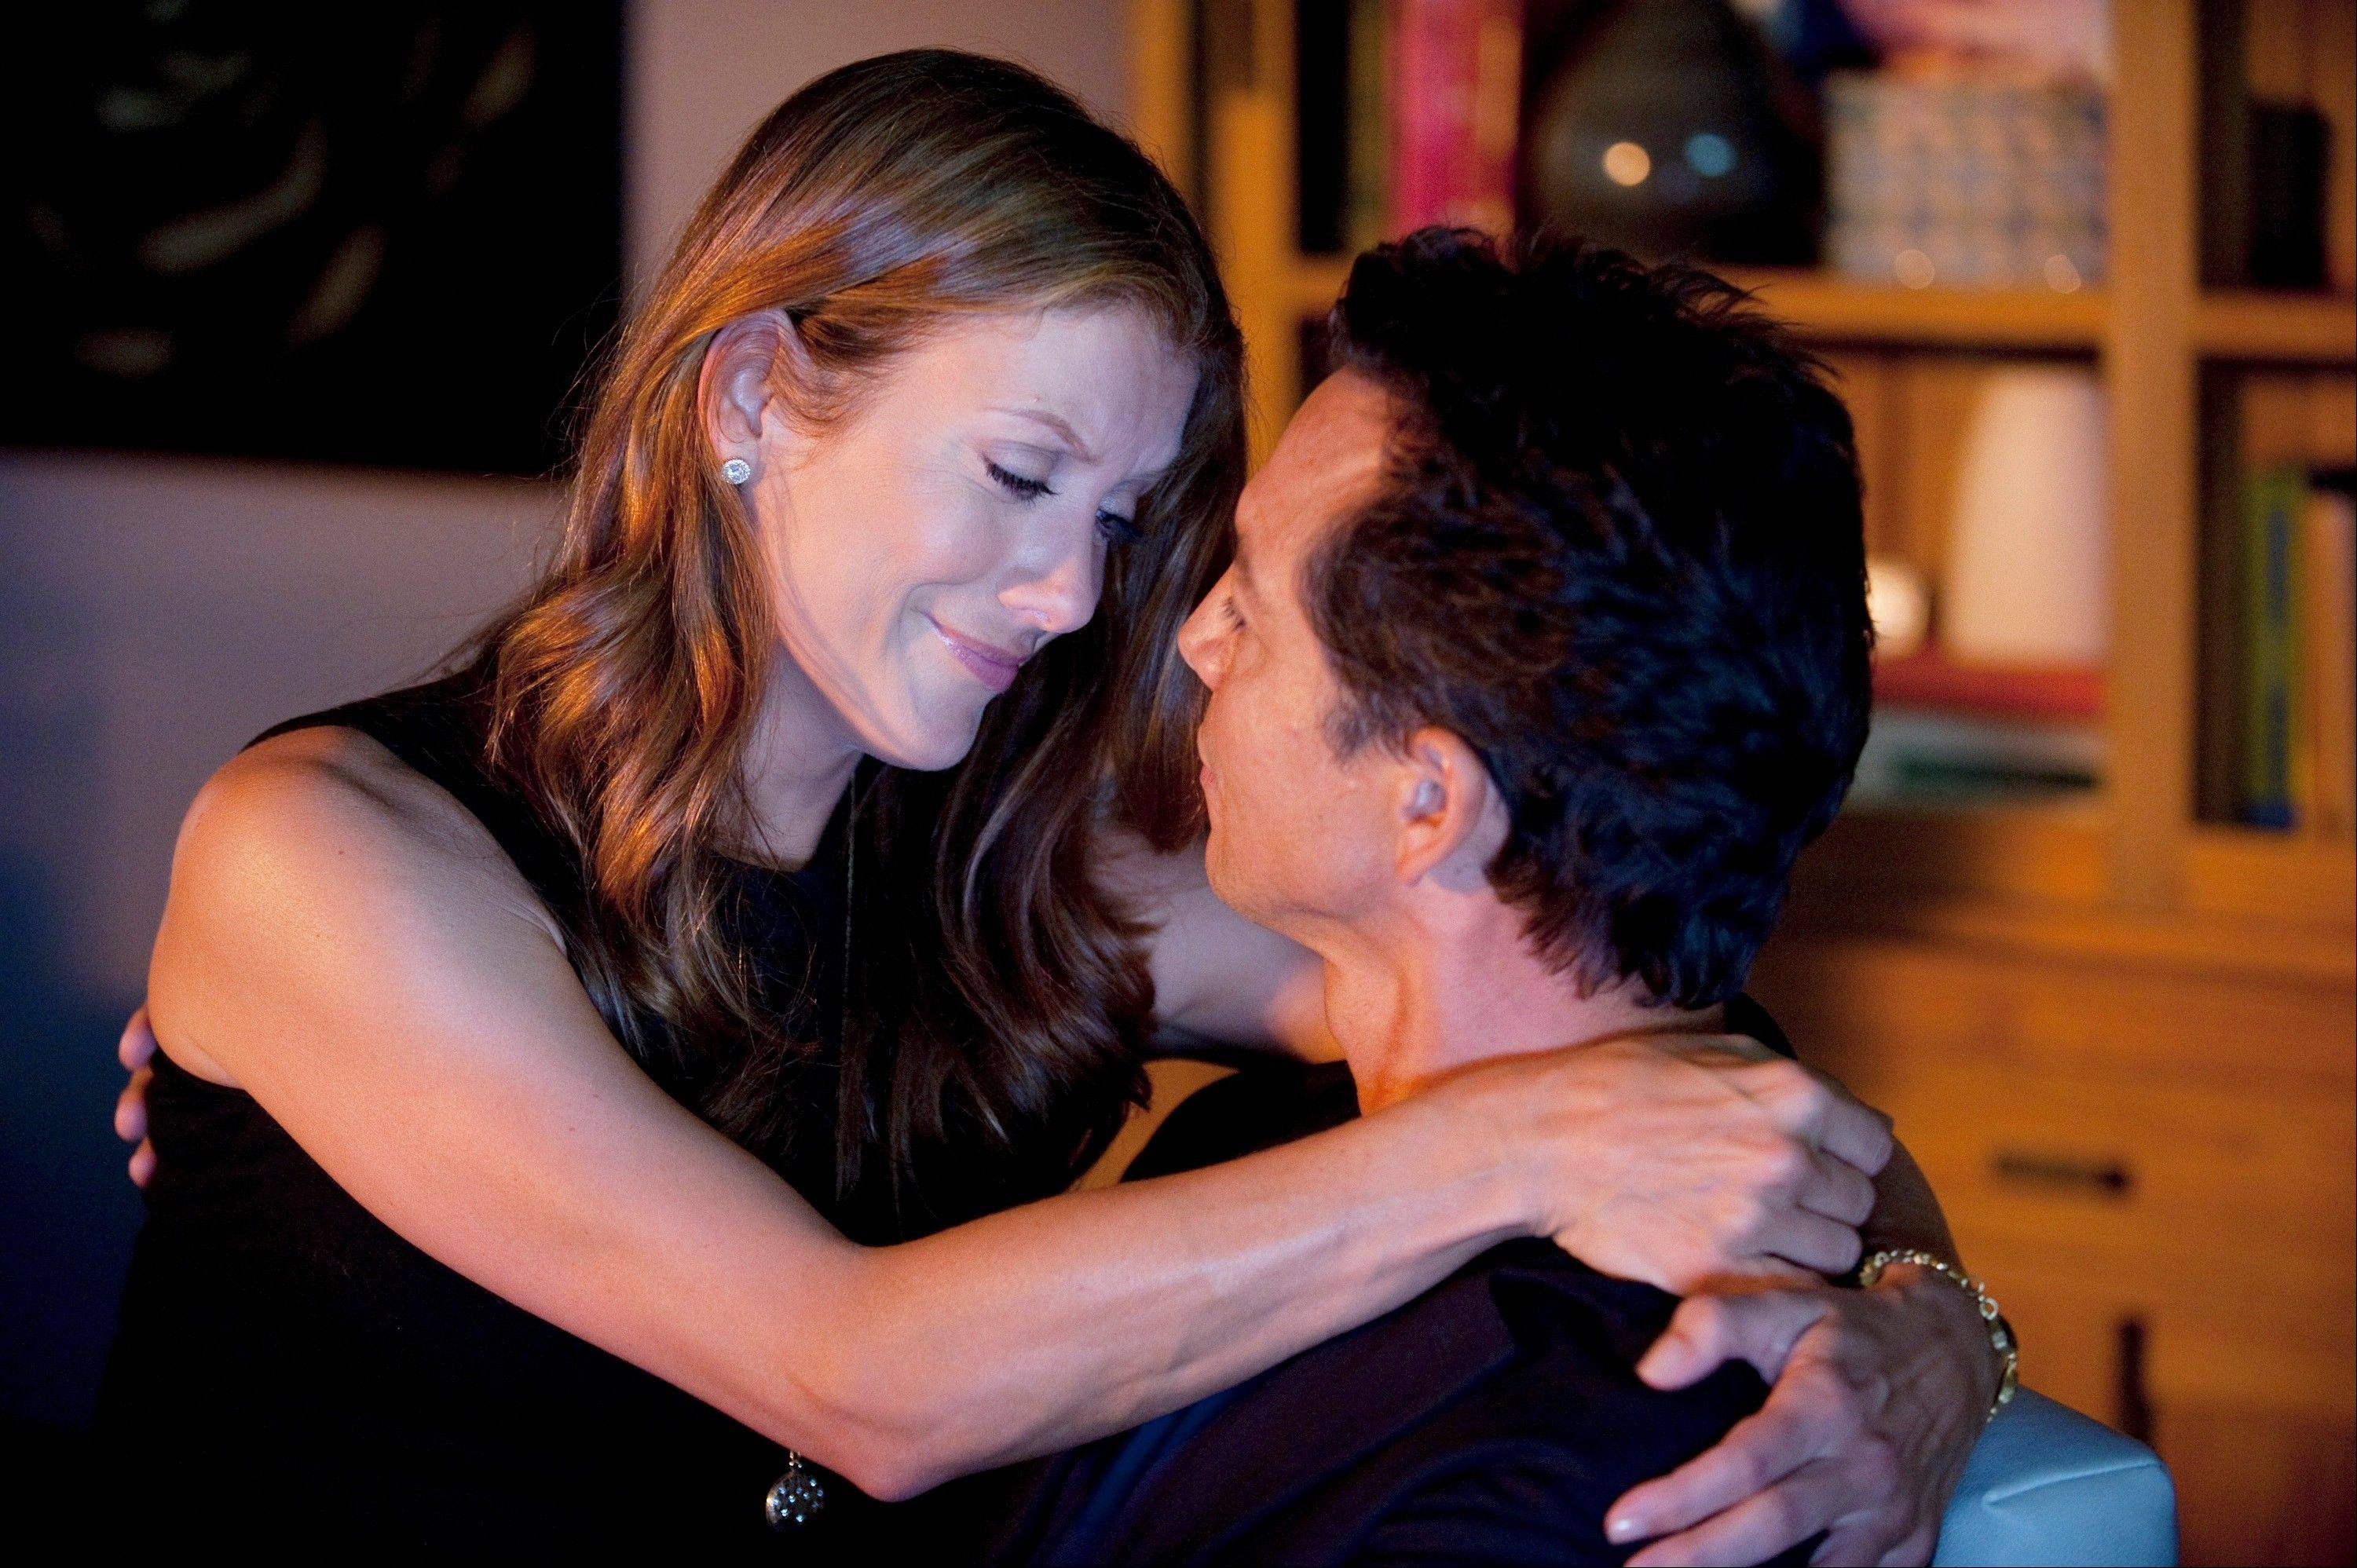 ABC�s �Private Practice,� starring Kate Walsh and Benjamin Bratt, will be ending after 13 episodes this season, most likely in January.